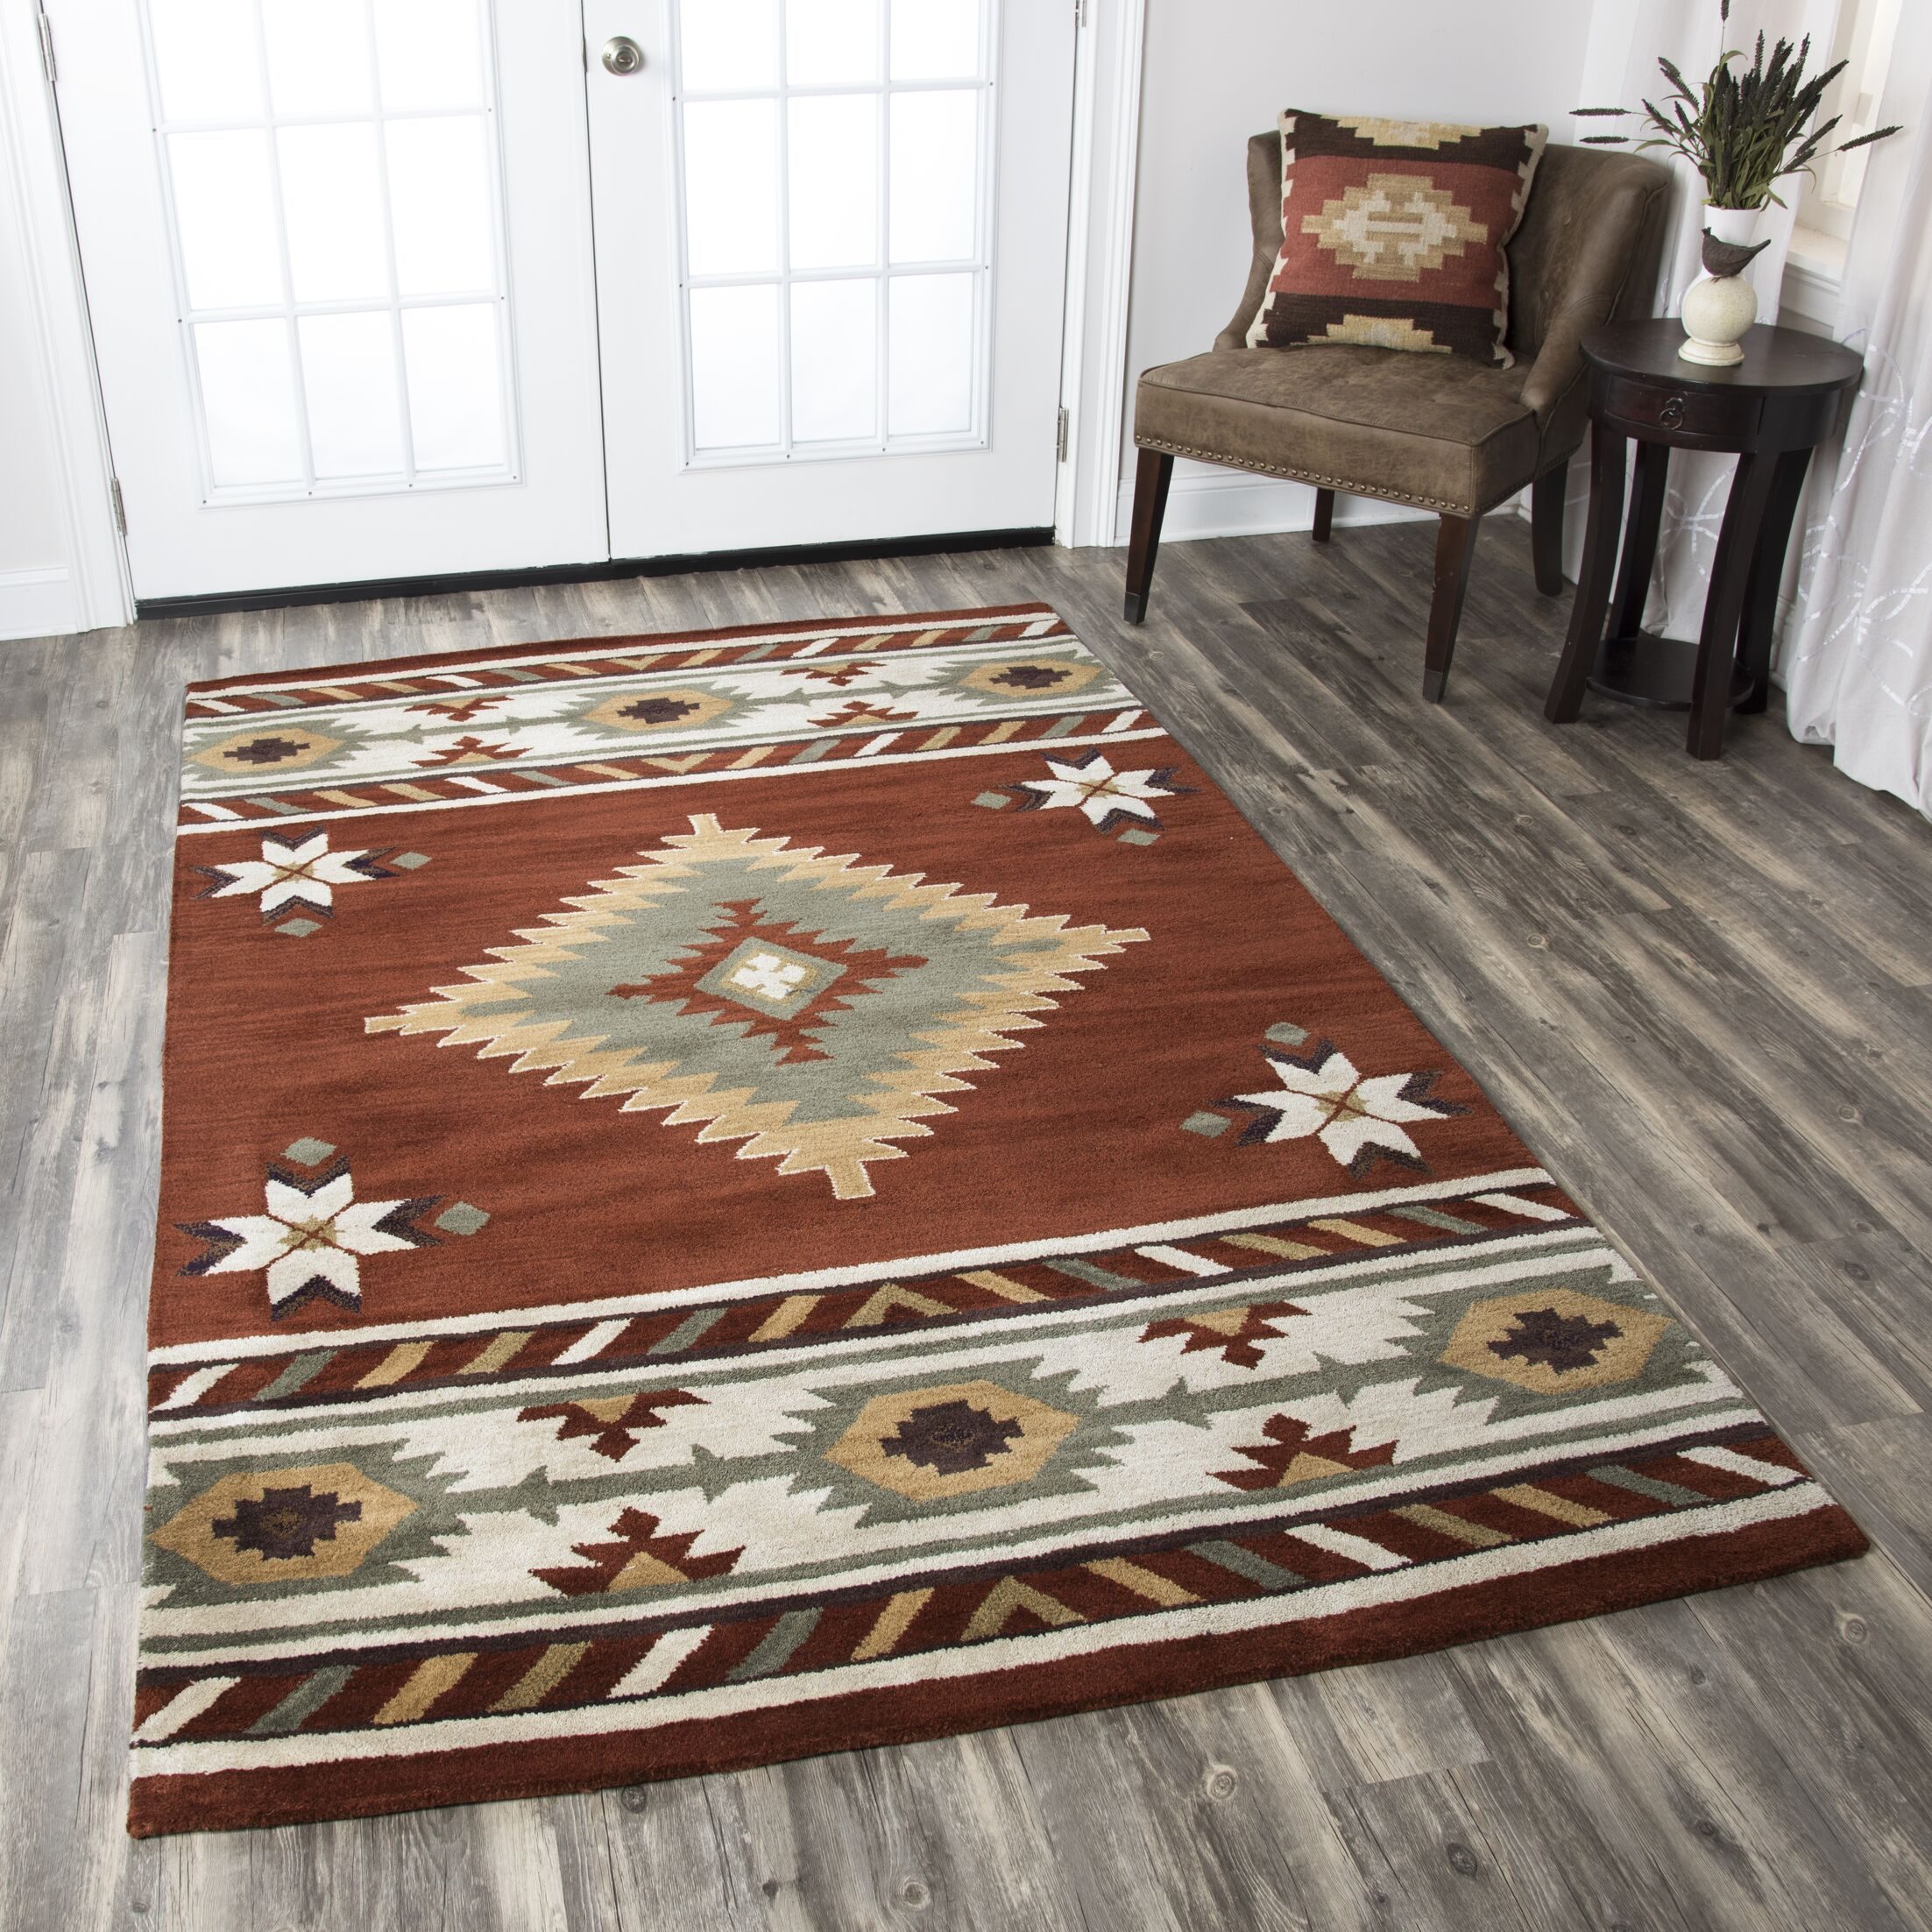 Owen Hand woven/Tufted Wool Area Rug Rug Size: Round 8'